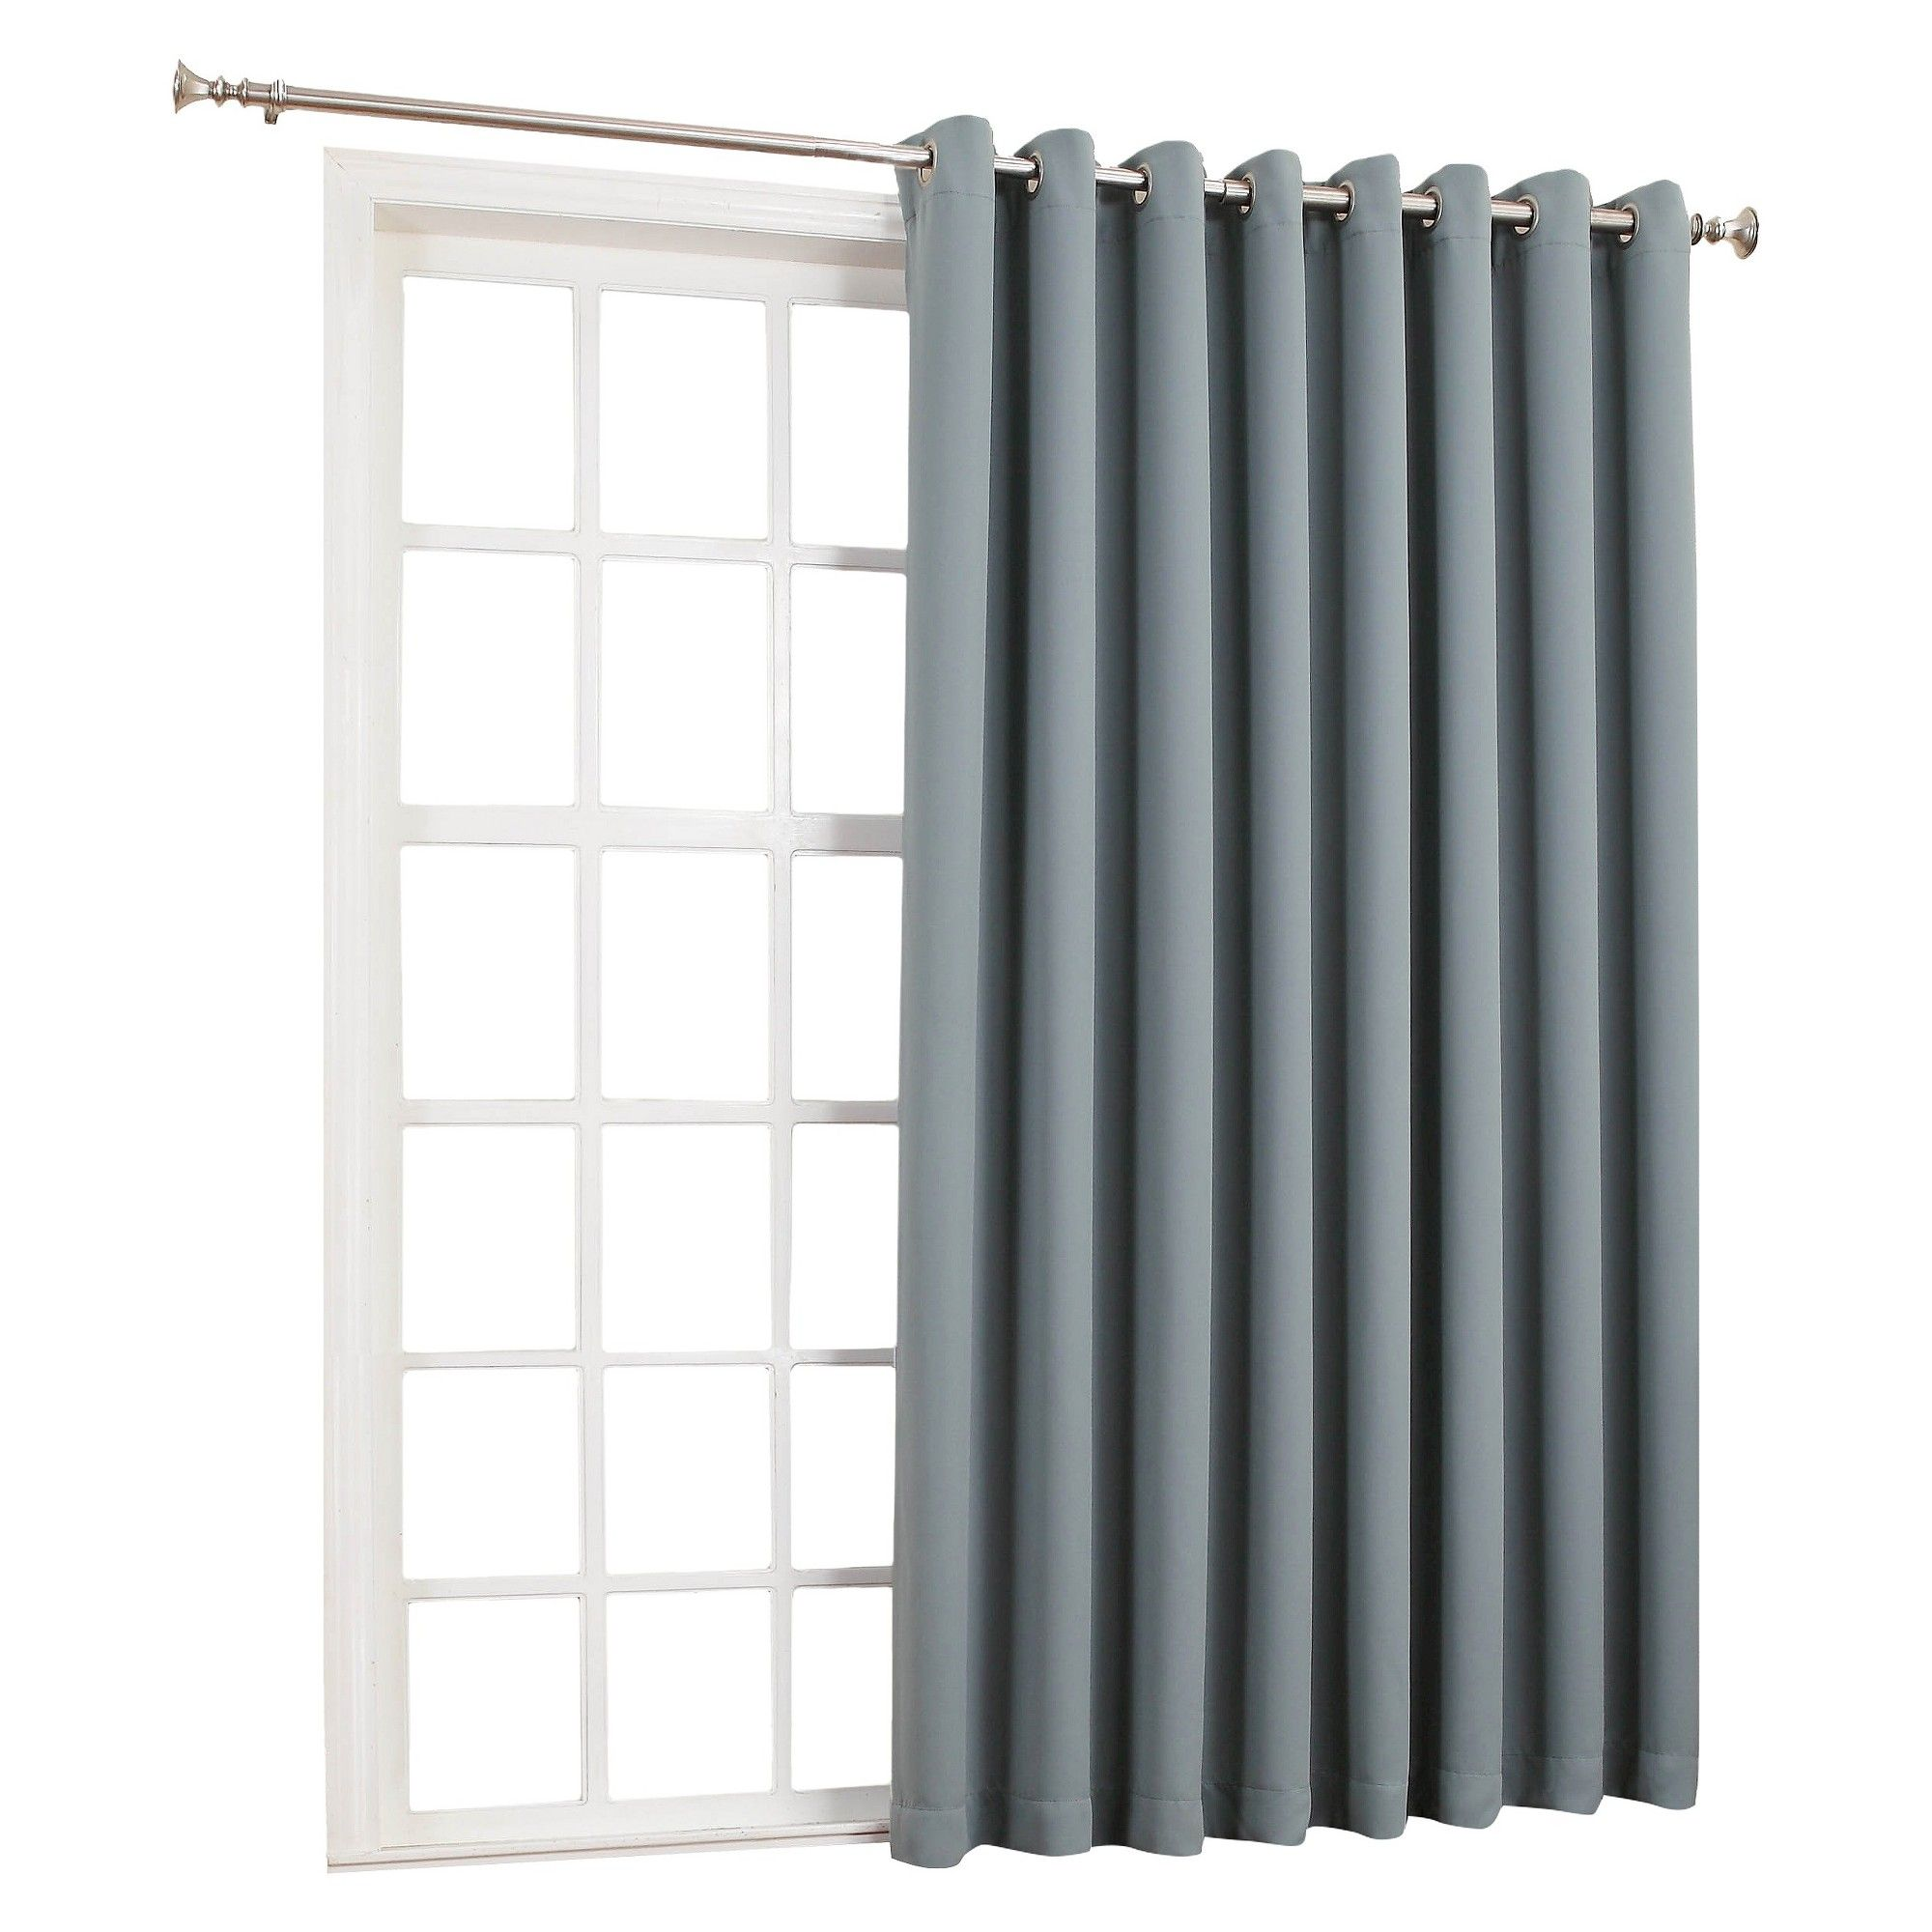 bed curtain product window blackout panel grommet bath wid wide qlt extra beyond store majestic hei lined curtains